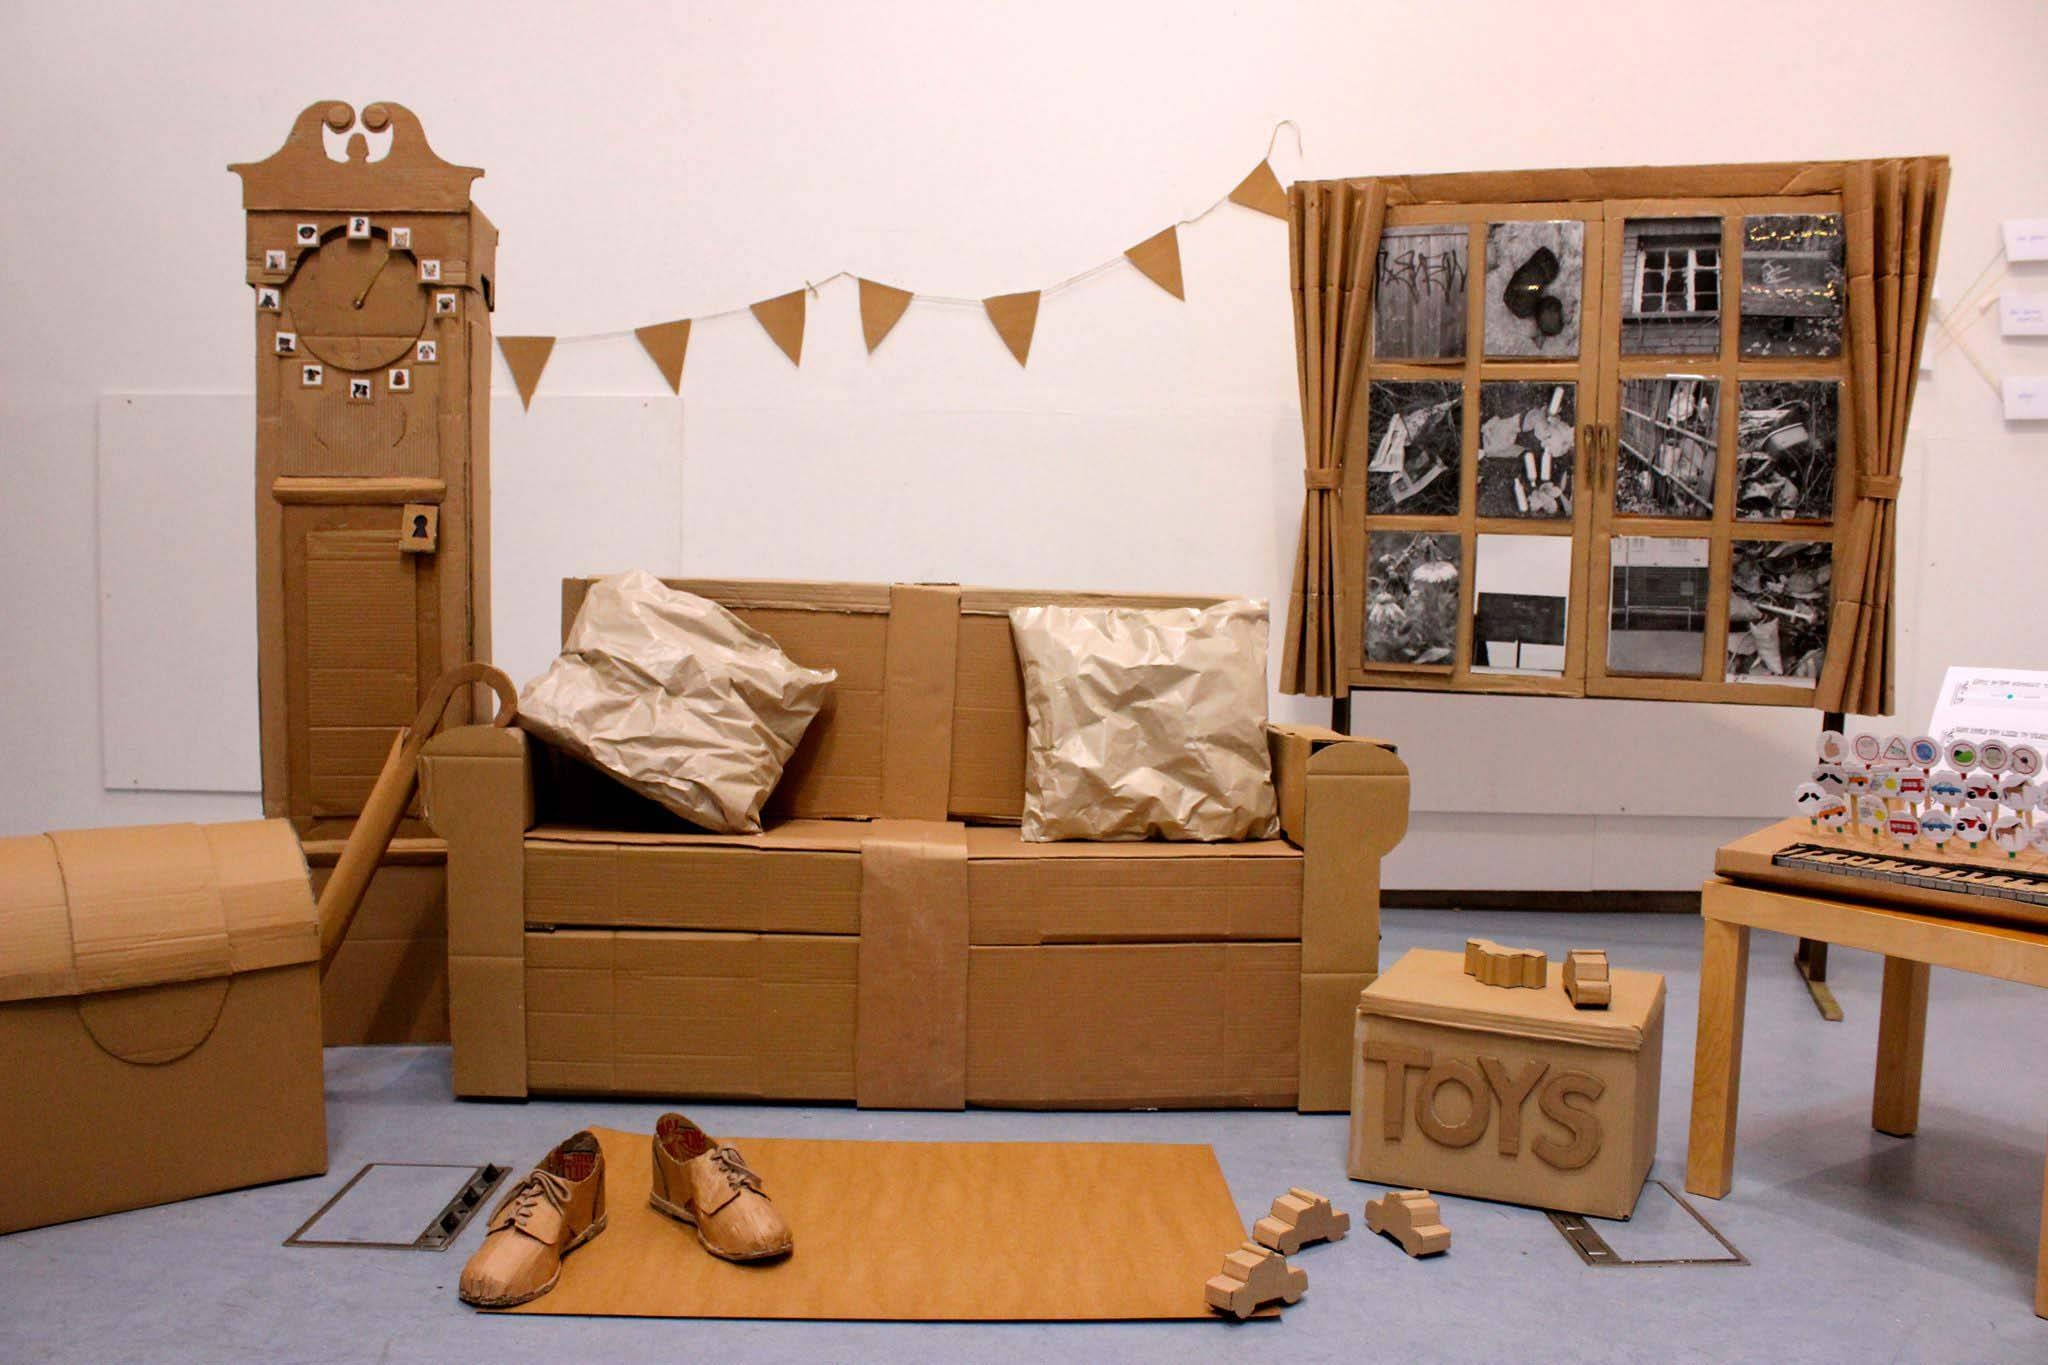 Cardboard Furniture Italian Design Companies Lighthouse Garage How within Cardboard Sofas (Image 5 of 15)